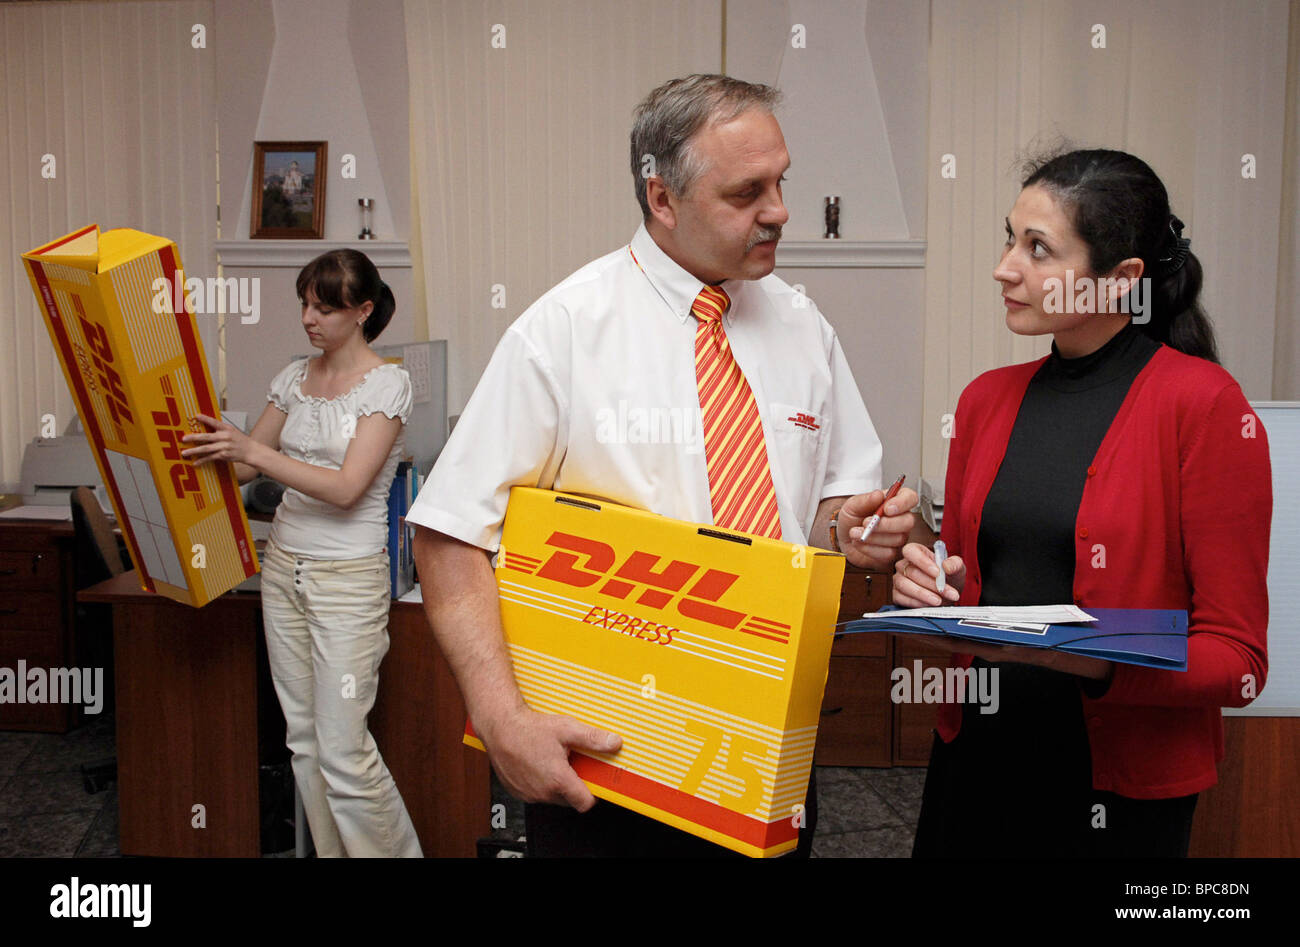 DHL International Express Delivery Service in operation in Russia - Stock Image